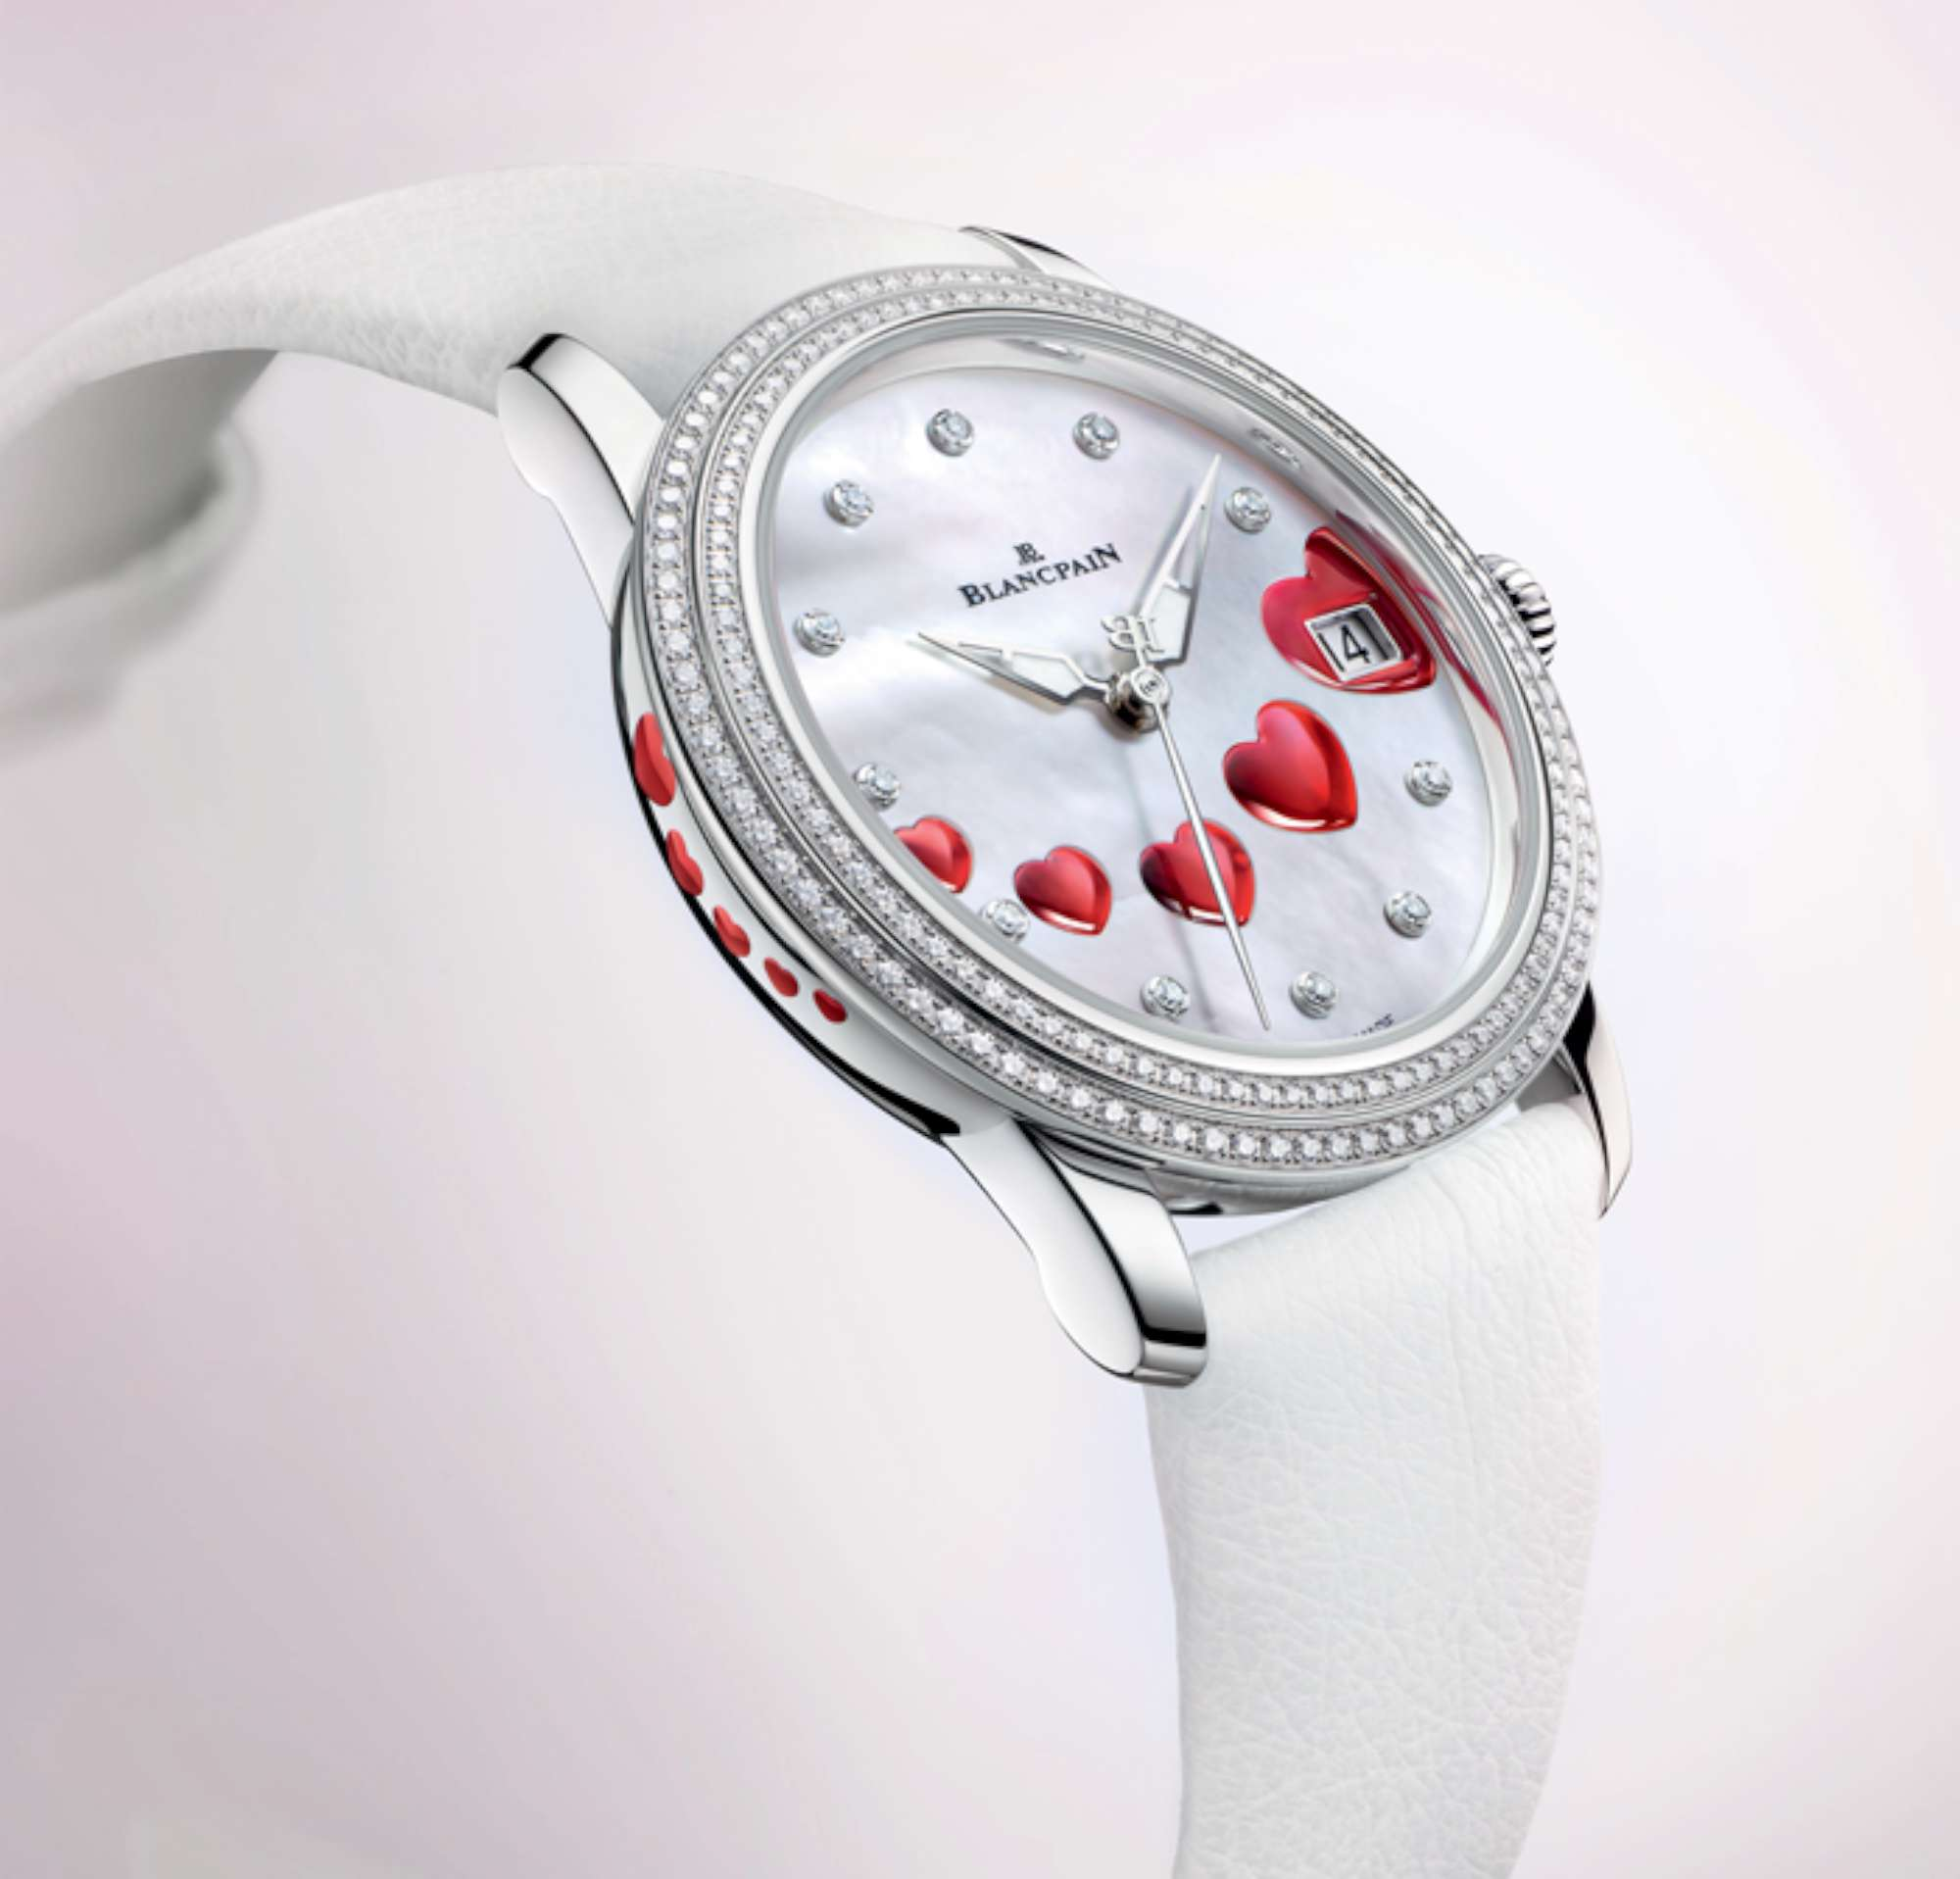 Blancpain S Rose Watch For Valentine S Day 2015 Time Transformed